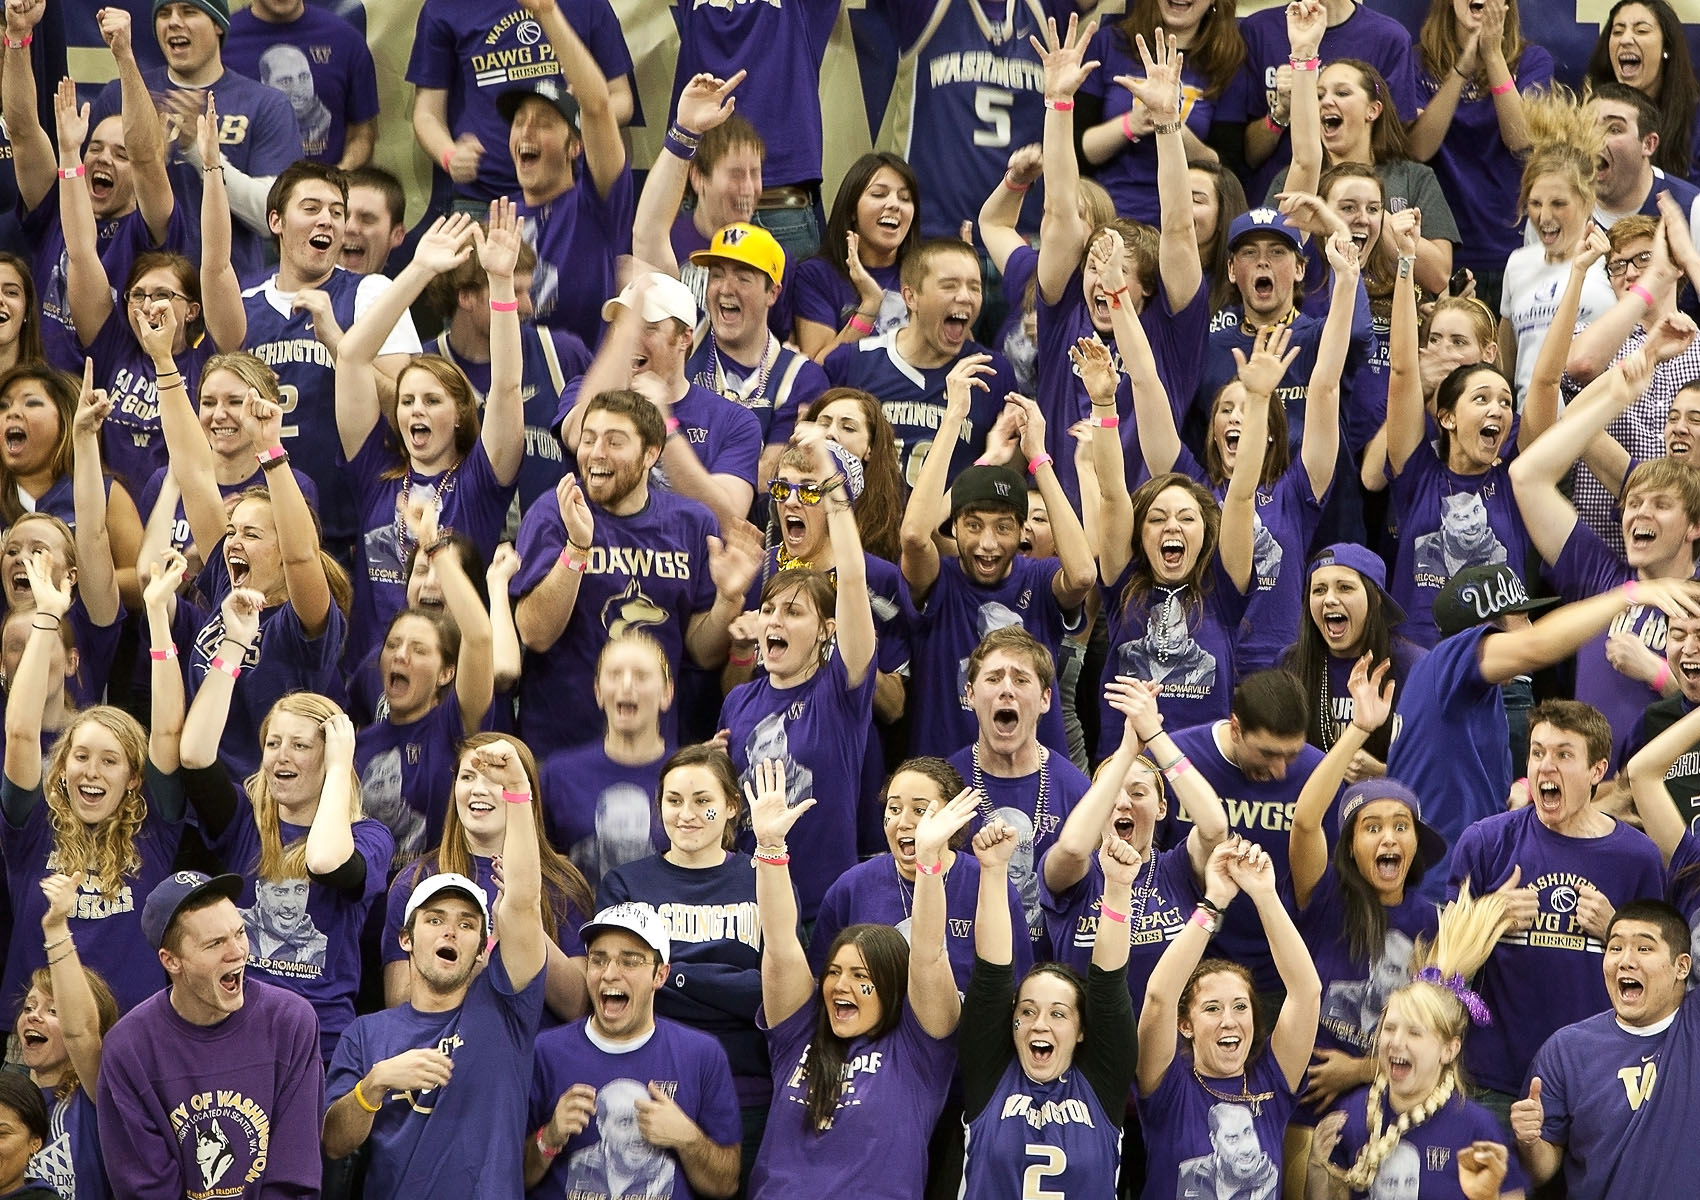 UW_Hoops_Crowd